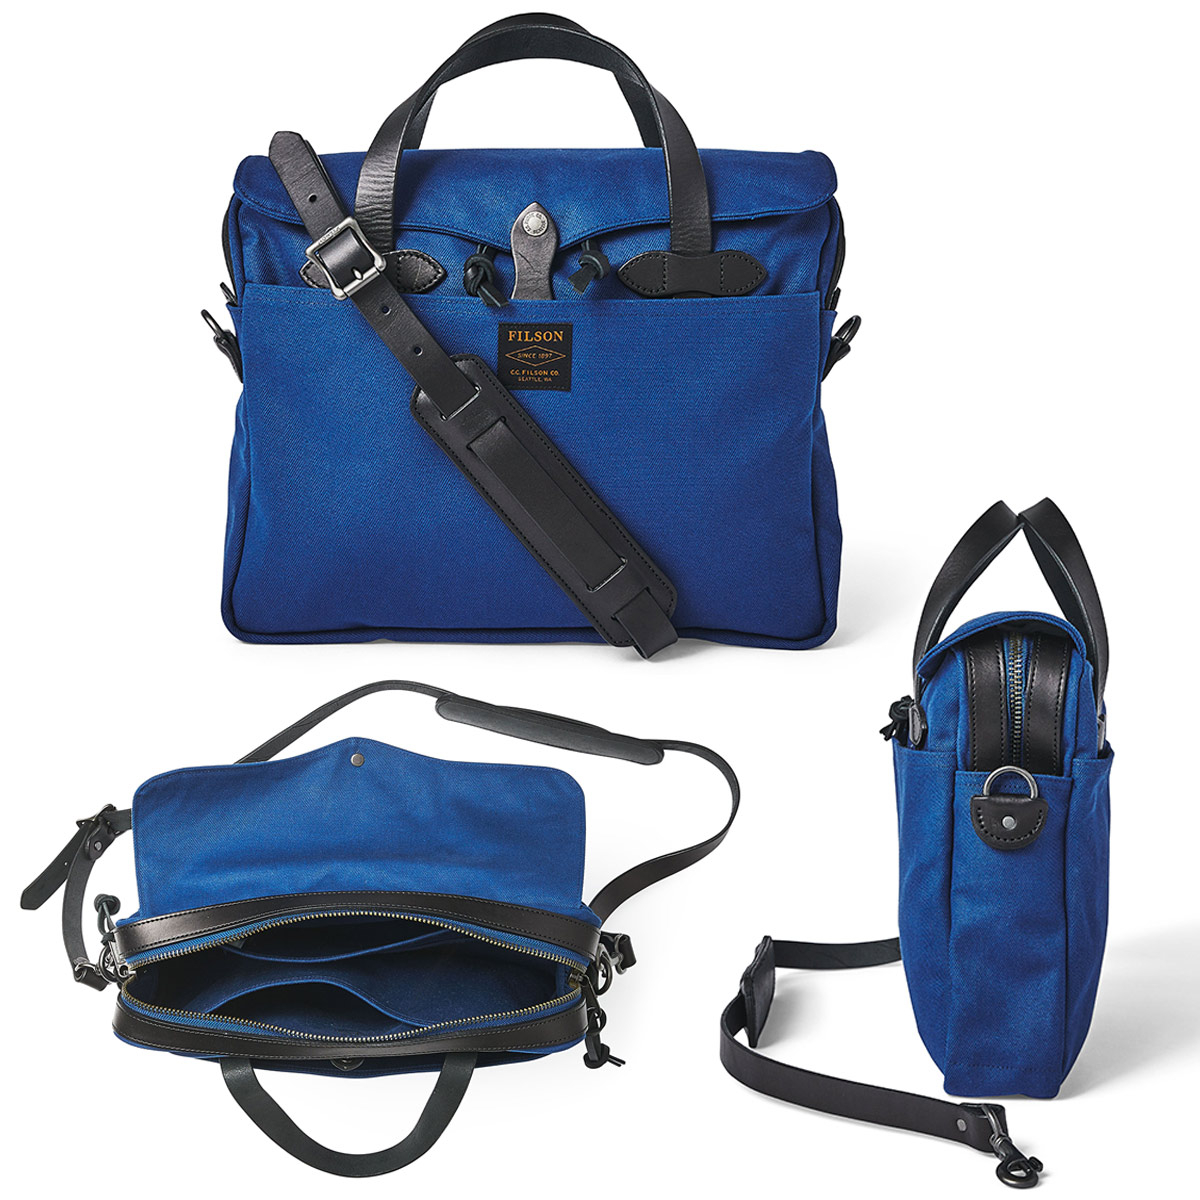 Filson Original Briefcase Flag Blue, past goed in een urban omgeving